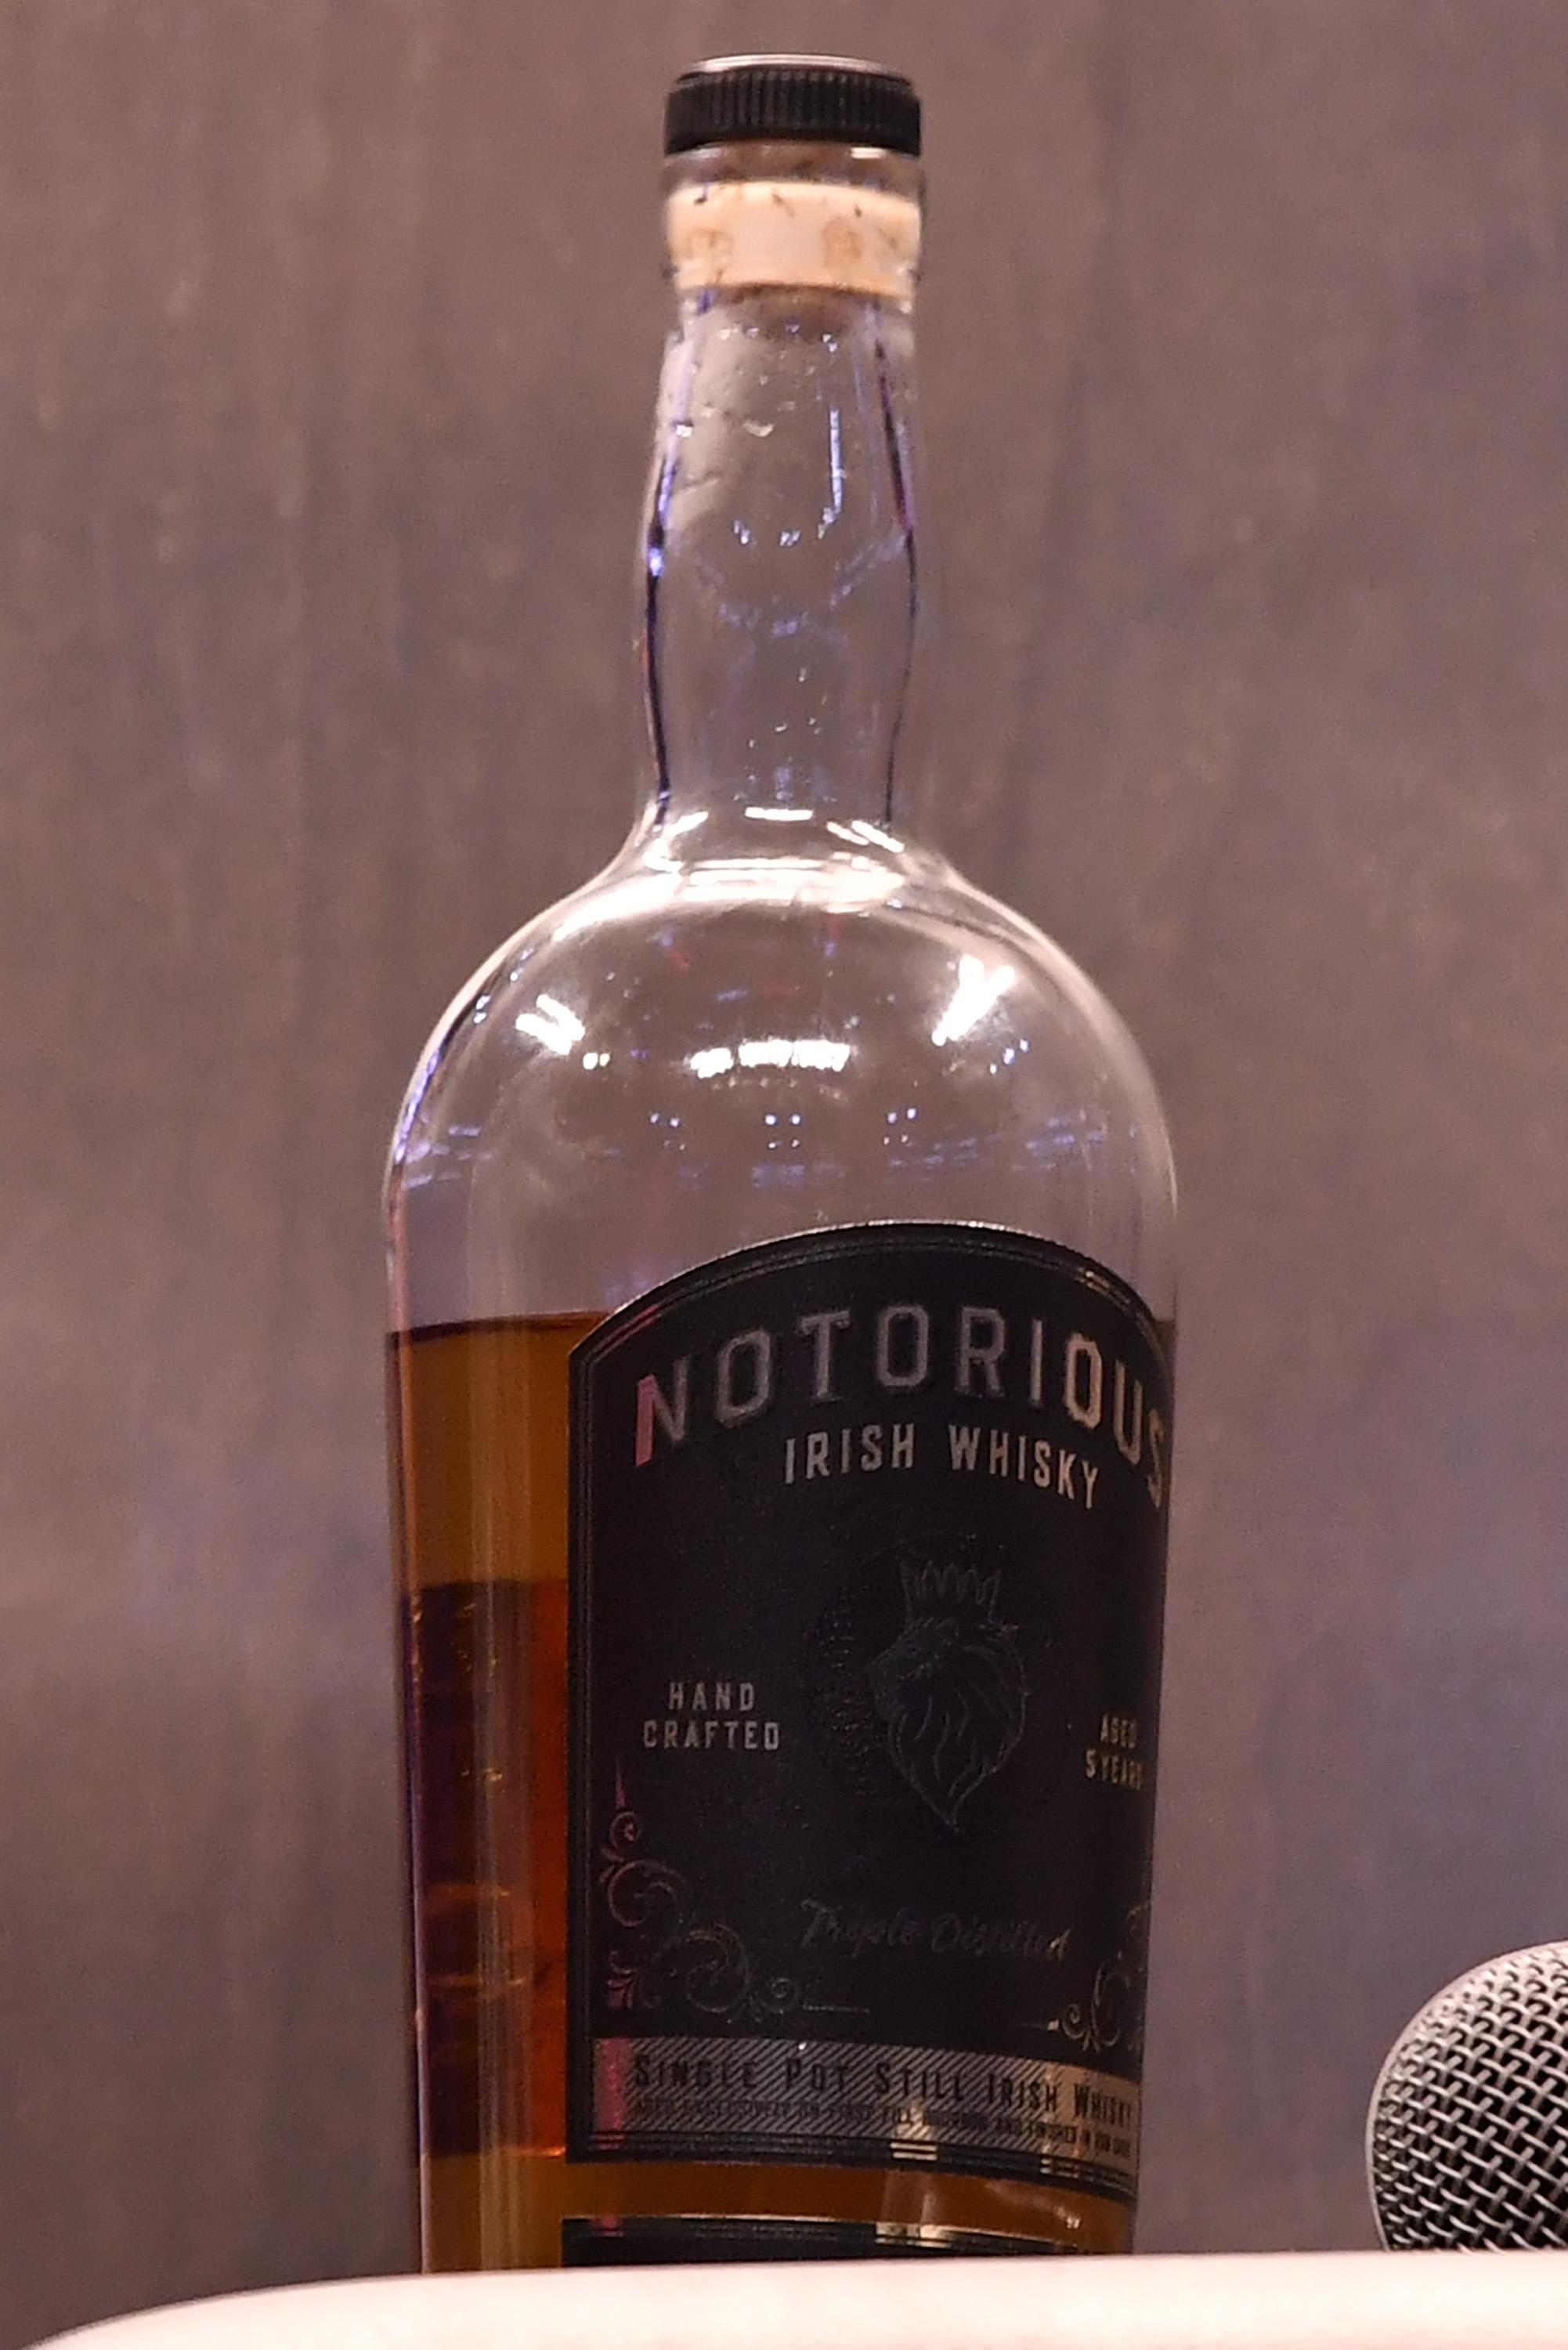 The Notorious Irish Whisky will be re-branded after the application was withdrawn